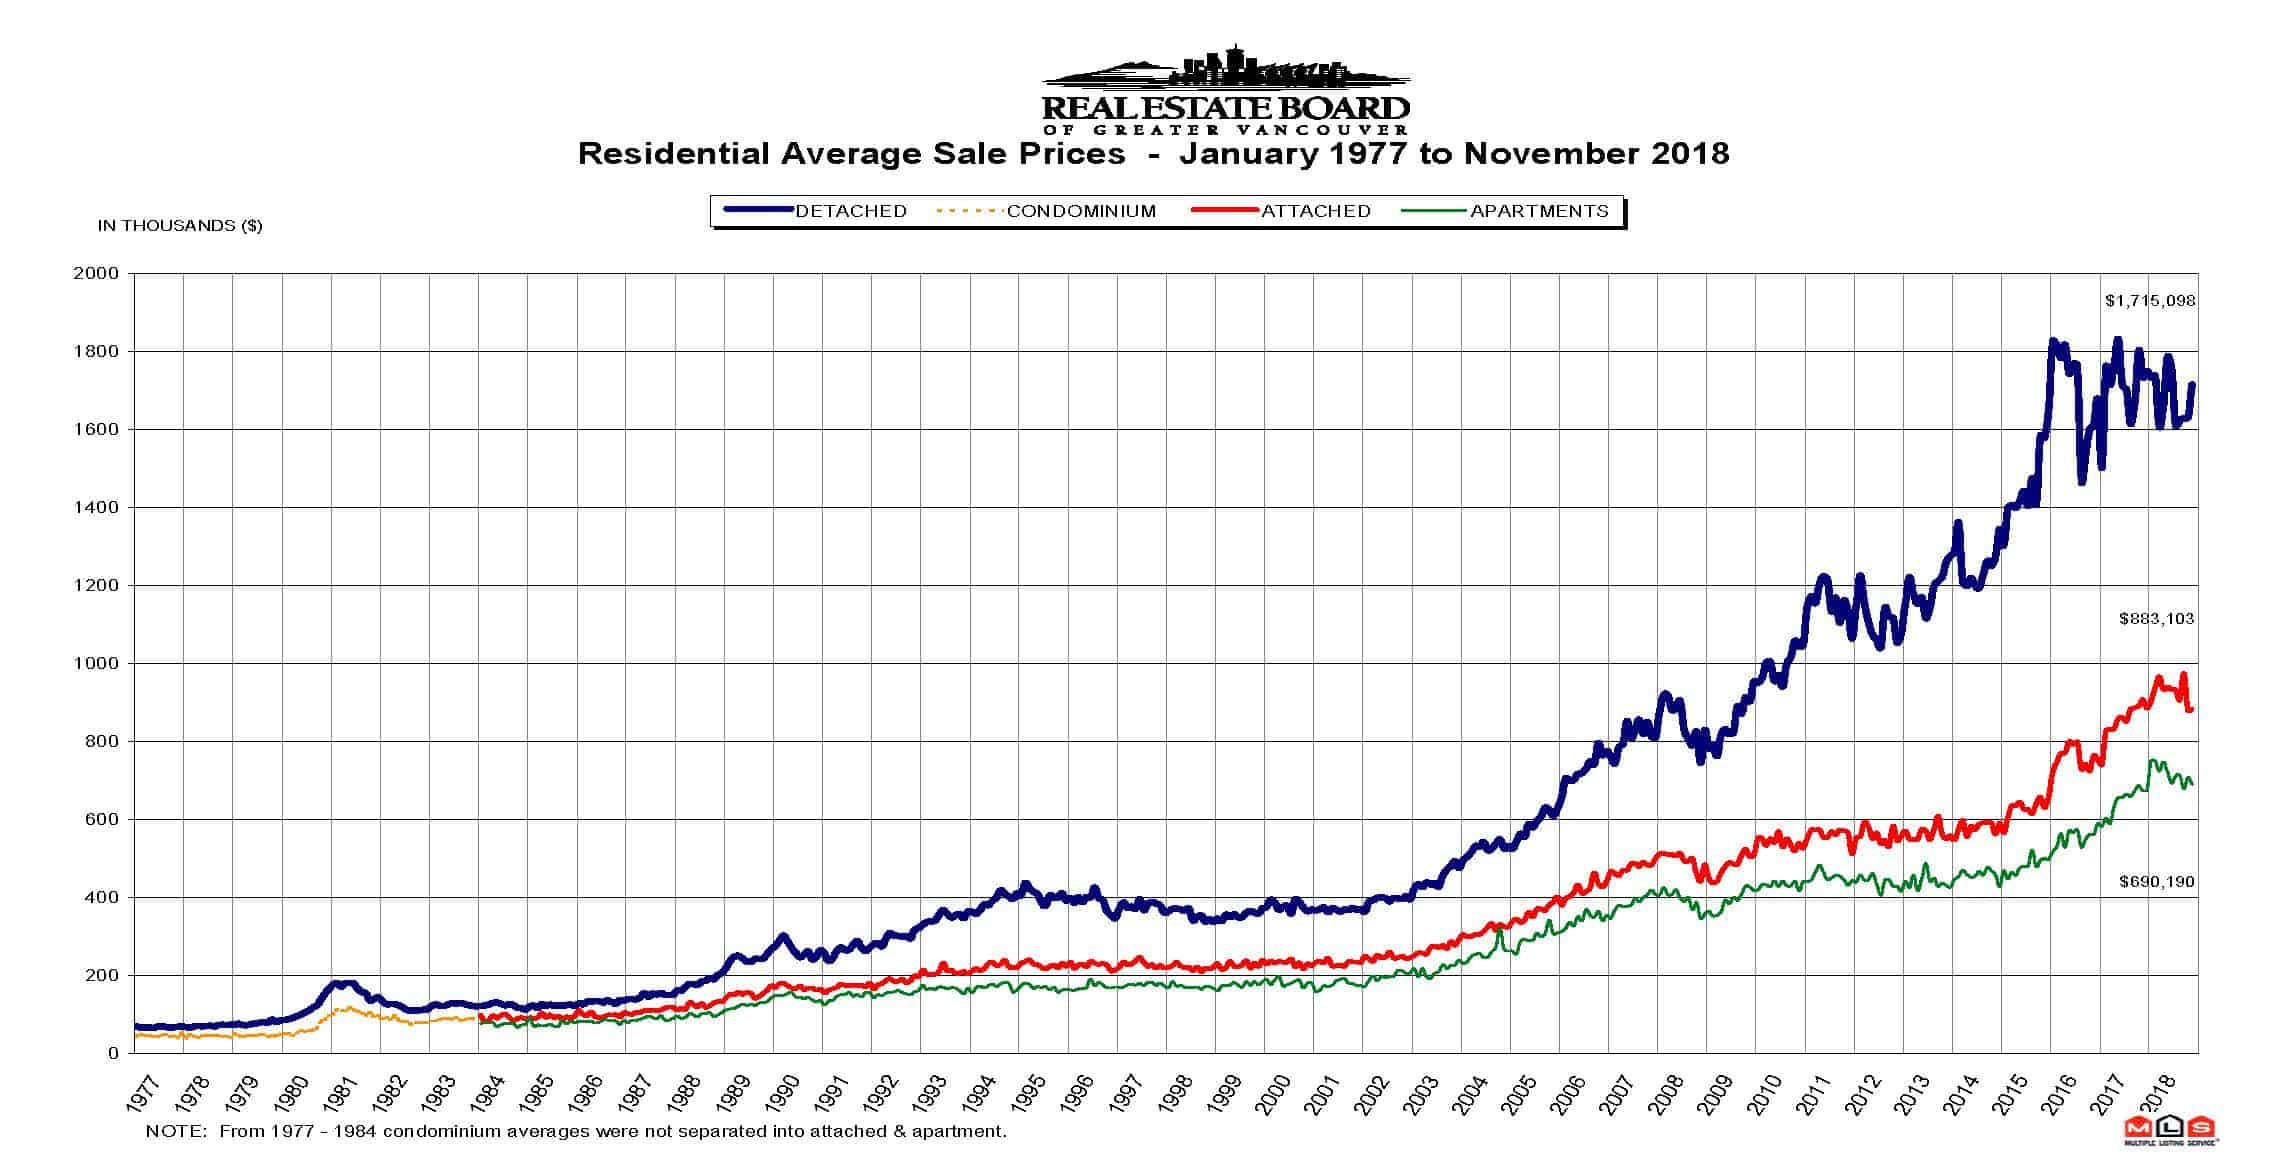 Residential Average Sales Price November 2018